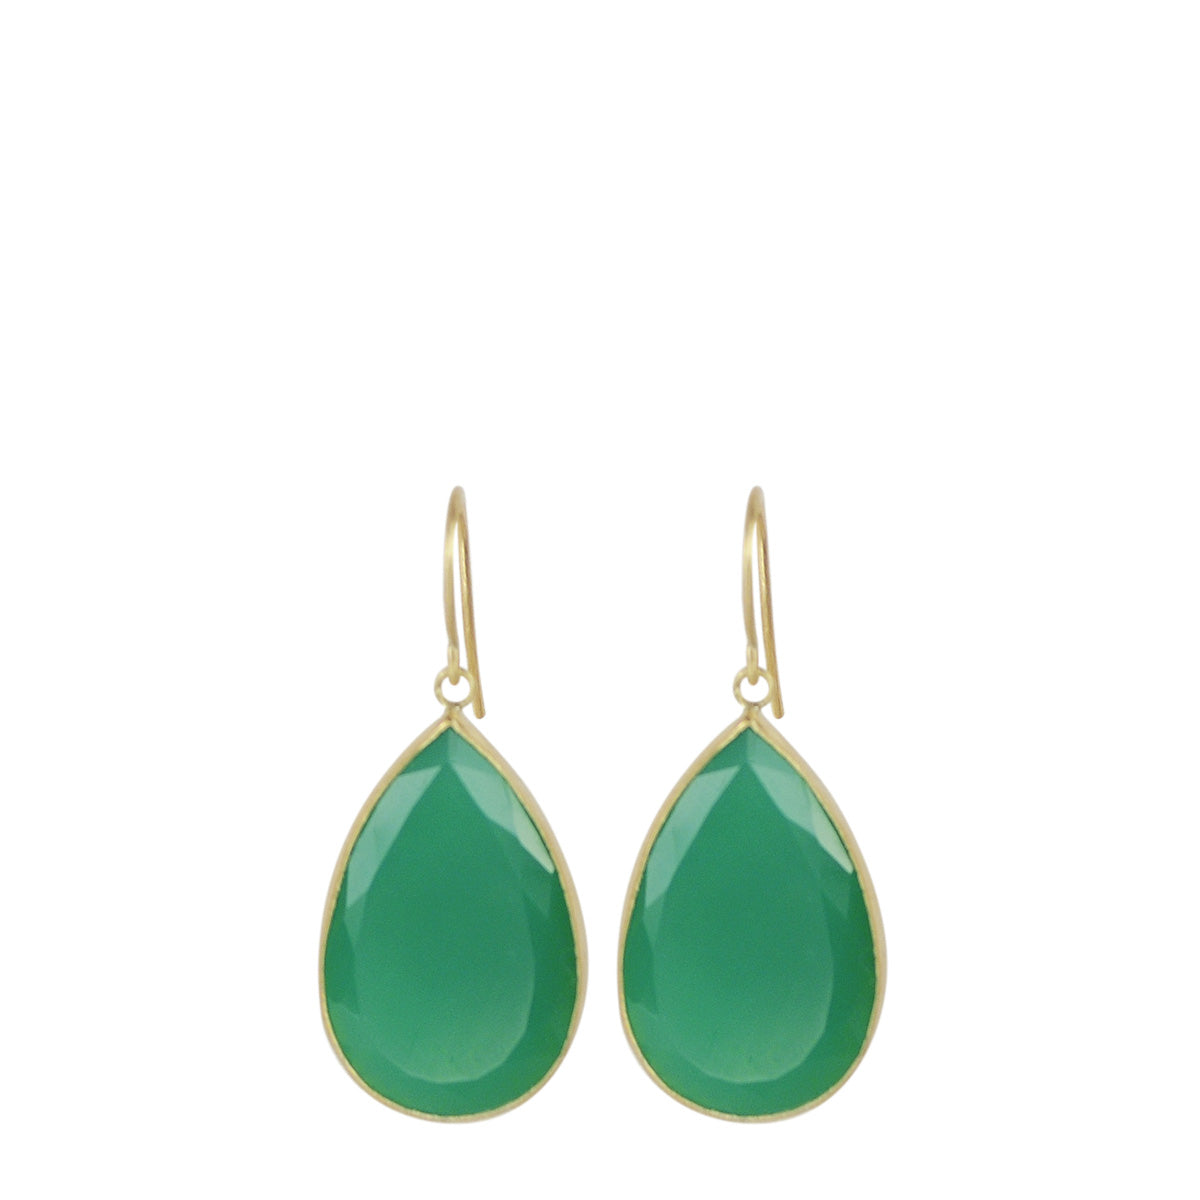 18K Gold Chrysoprase Teardrop Earrings